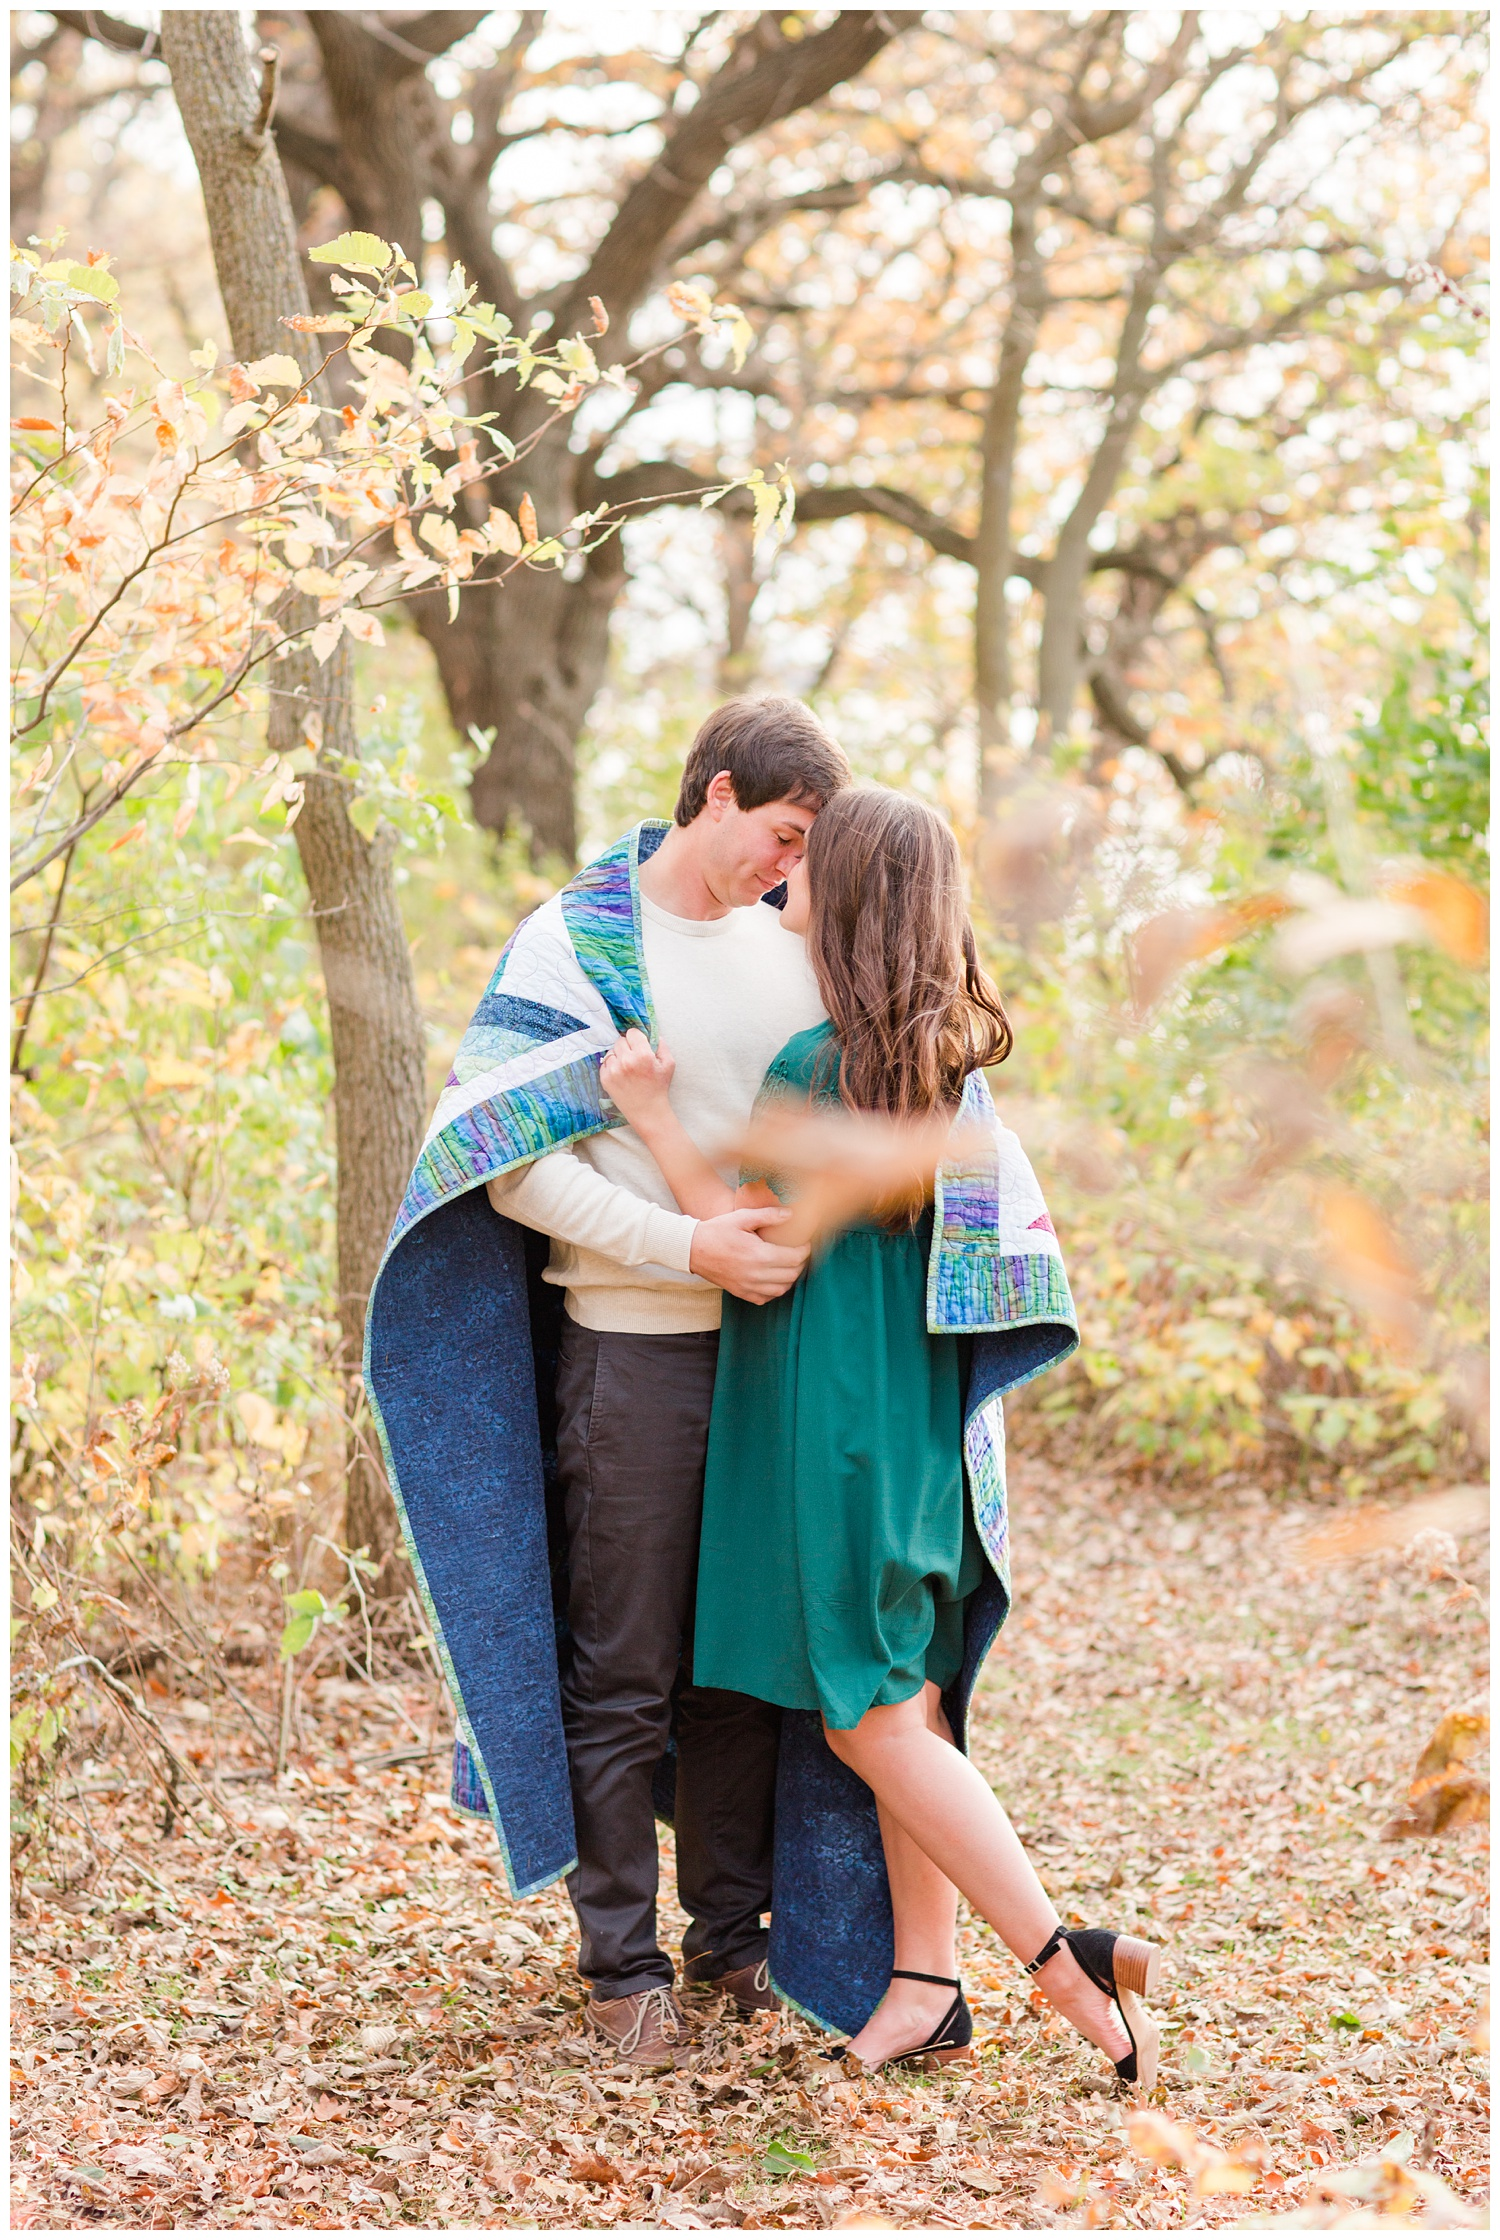 Fall in Iowa, Jenna wearing an emerald green dress embraces Brady while both wrapped in a quilt in the middle of an autumn path at Lost Island Nature Center   CB Studio